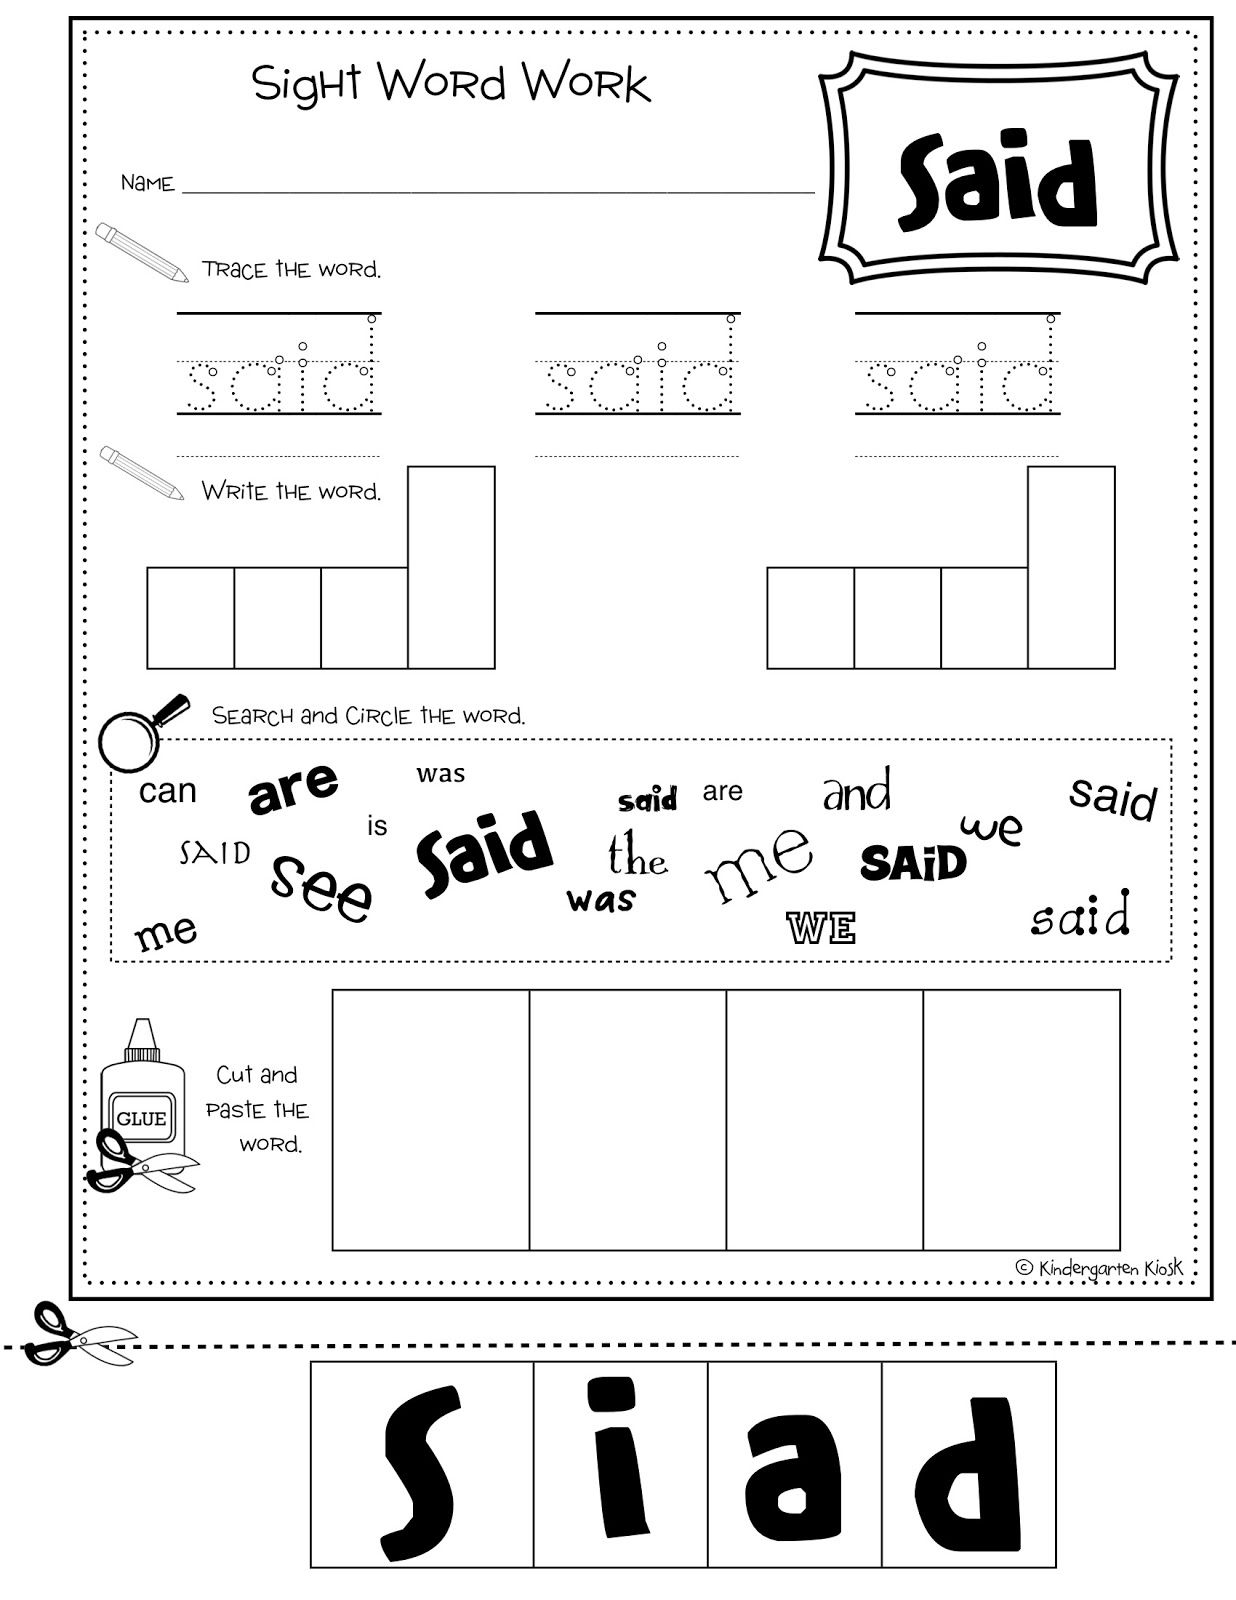 Kindergarten Worksheets Sight Words : Kindergarten sight words worksheets pdf communication